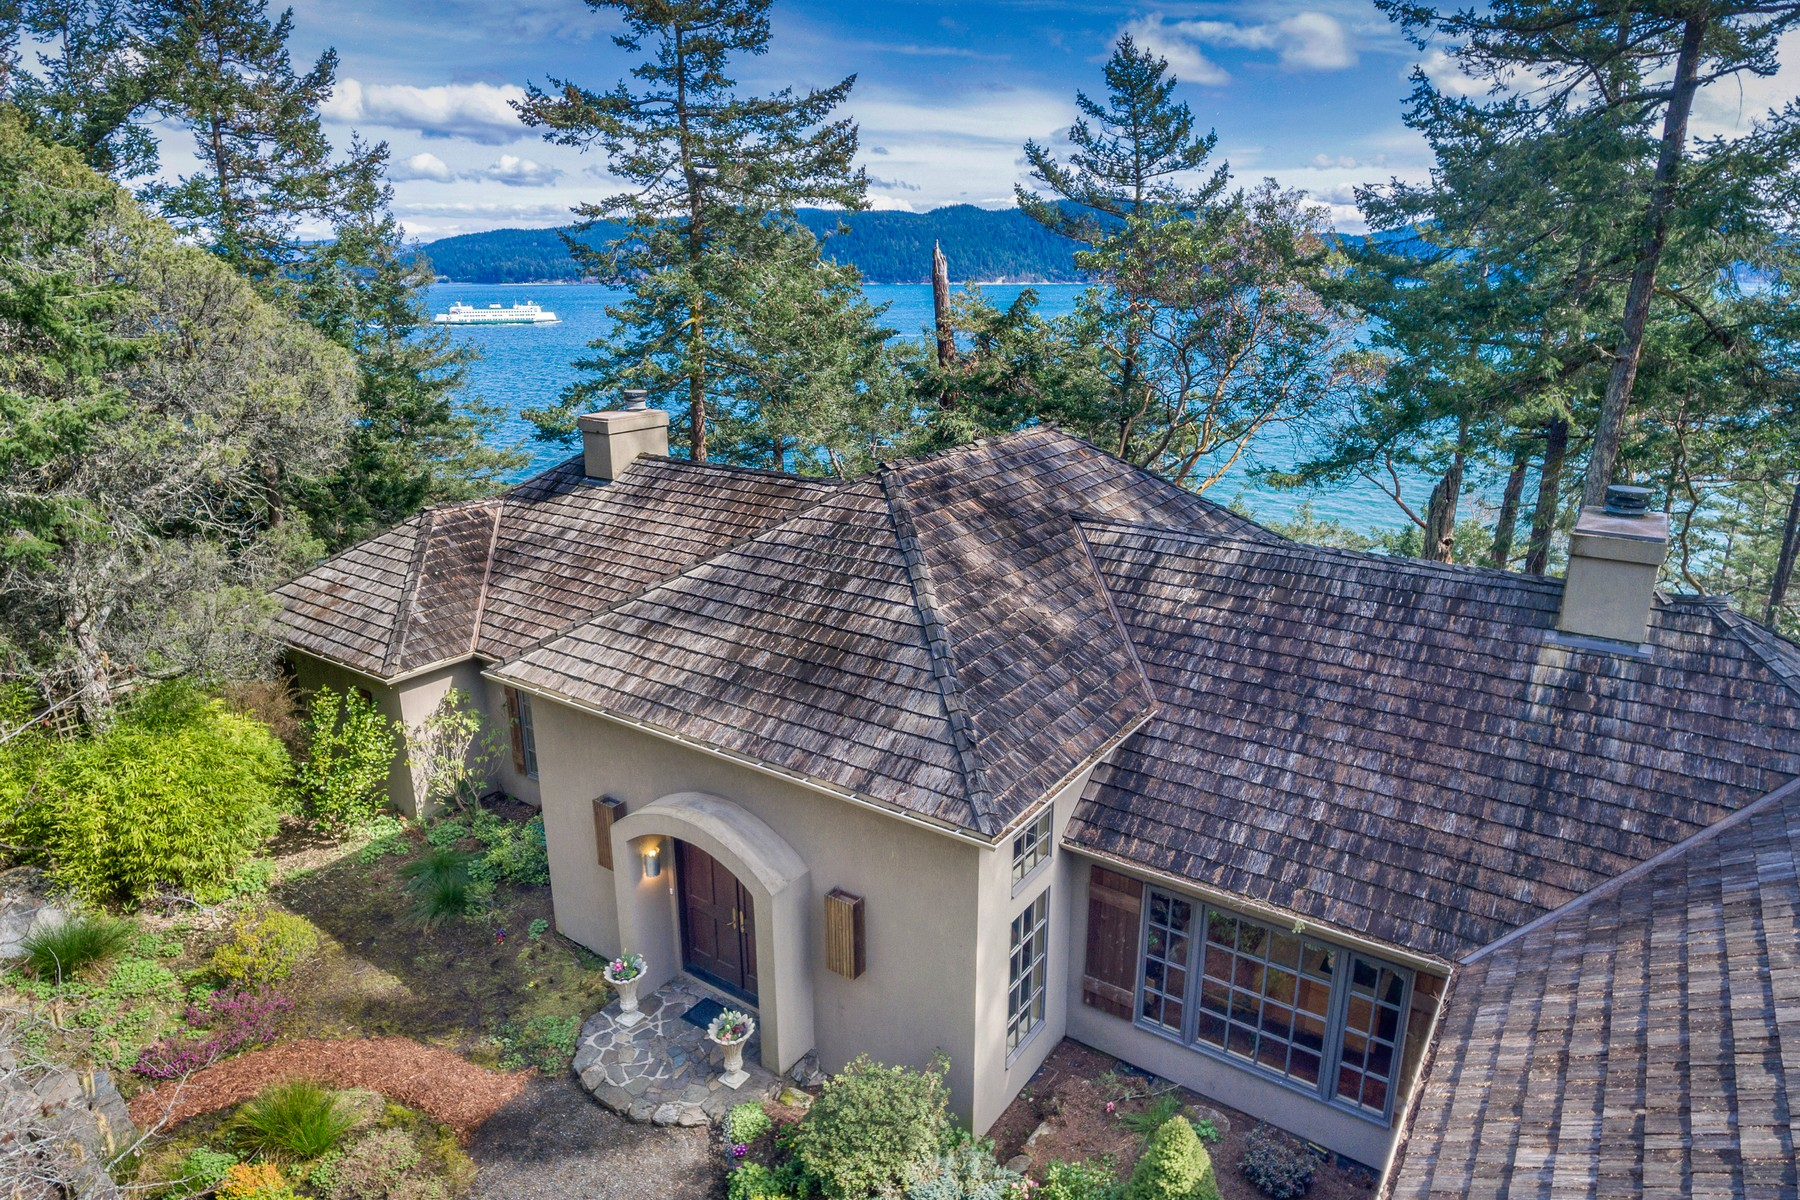 Casa Unifamiliar por un Venta en Beautiful Waterfront Home on Lopez Island 688 Shoreland Drive, Lopez Island, Washington, 98261 Estados Unidos